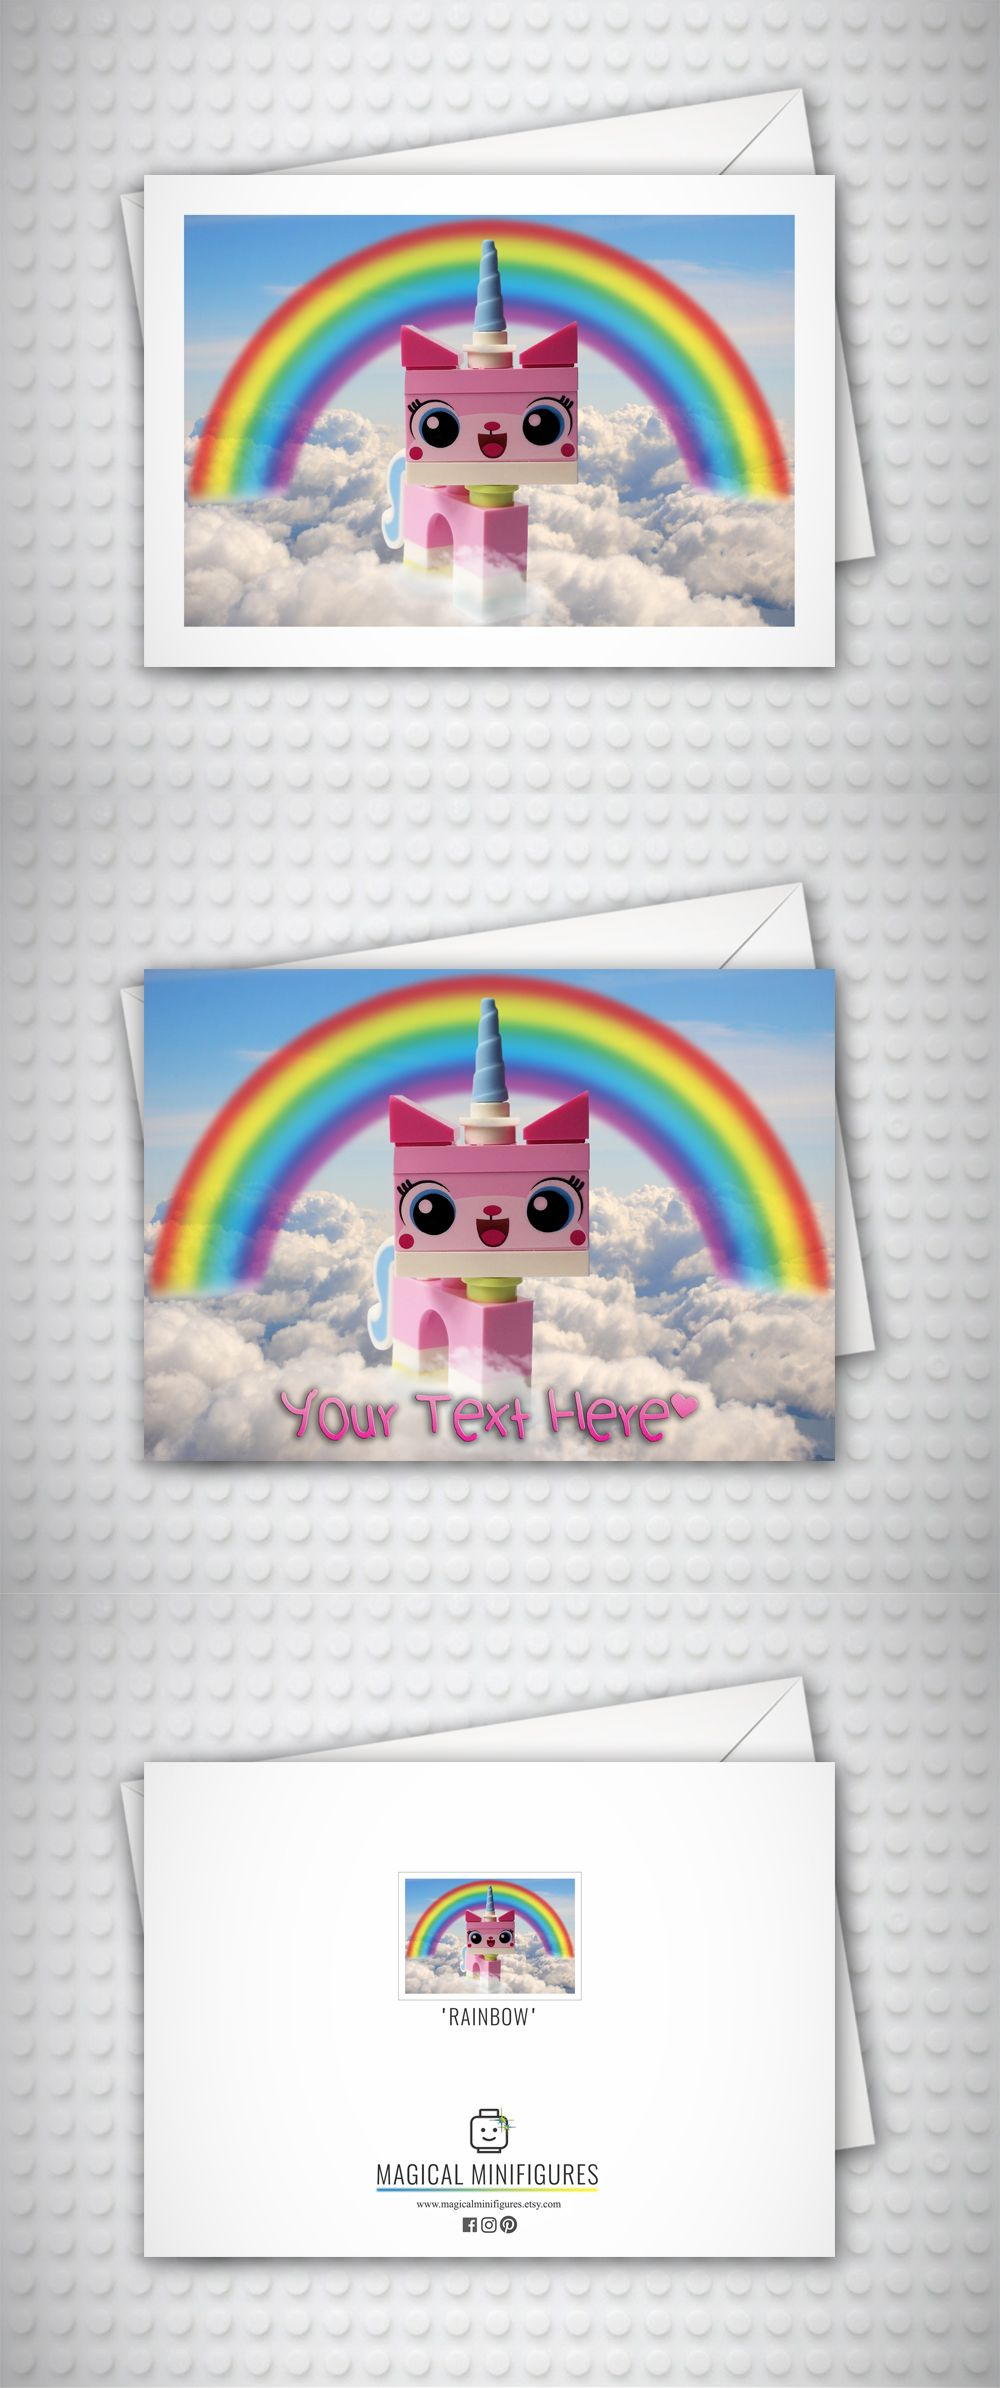 Unikitty lego minifigure card by magical minifigures this handmade